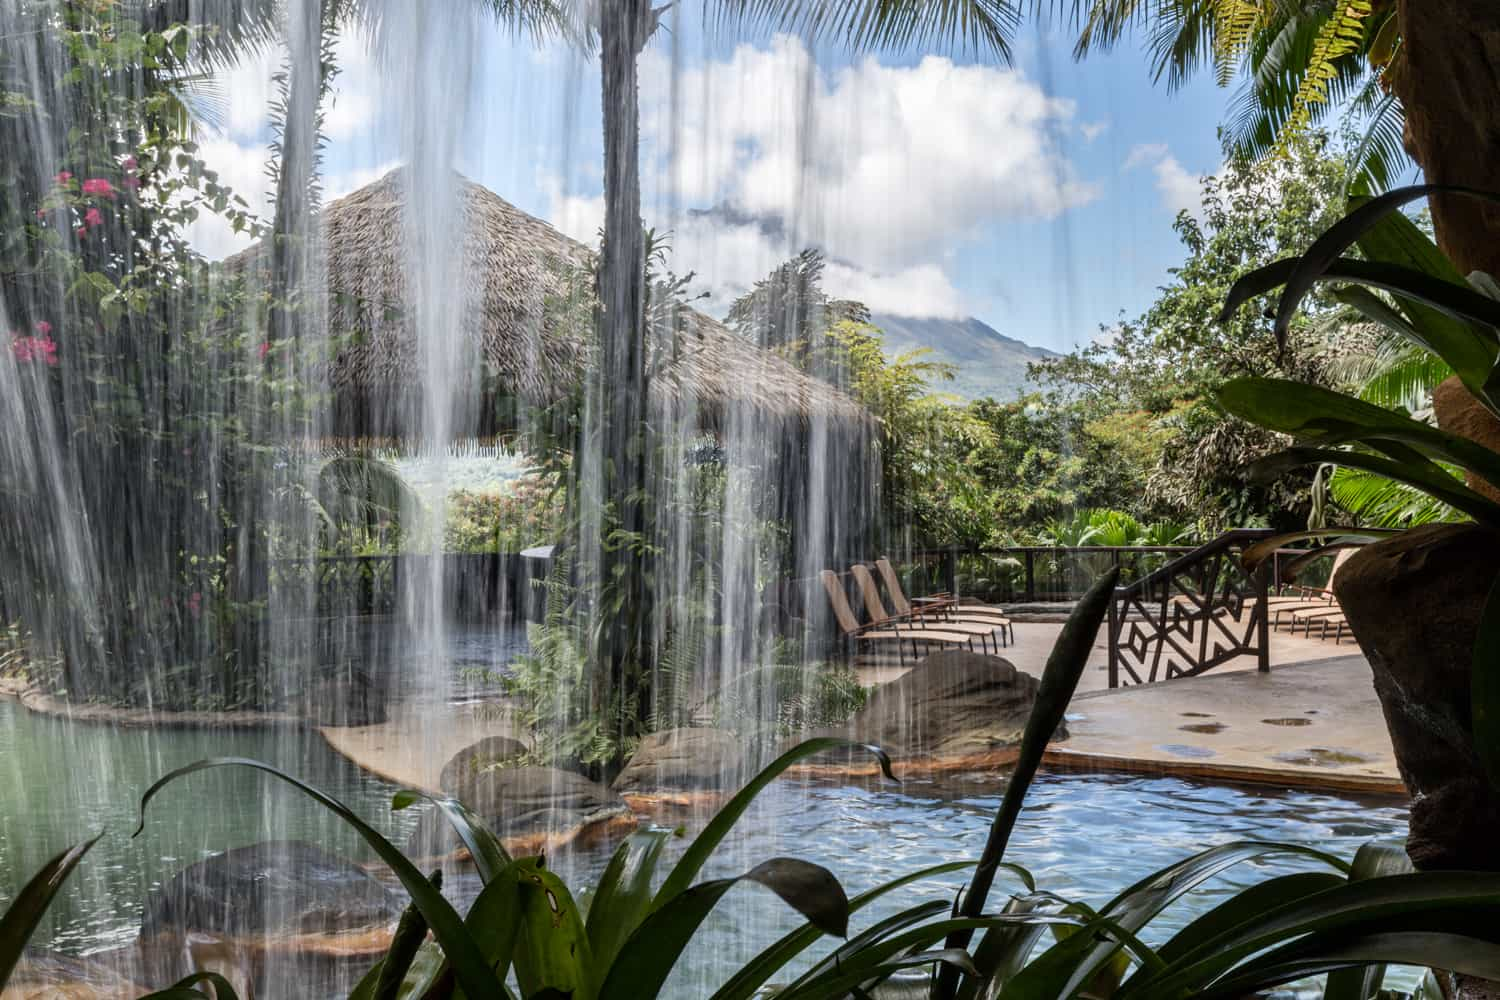 View of the Ranchito Terrace wedding ceremony and reception location from behind a waterfall.